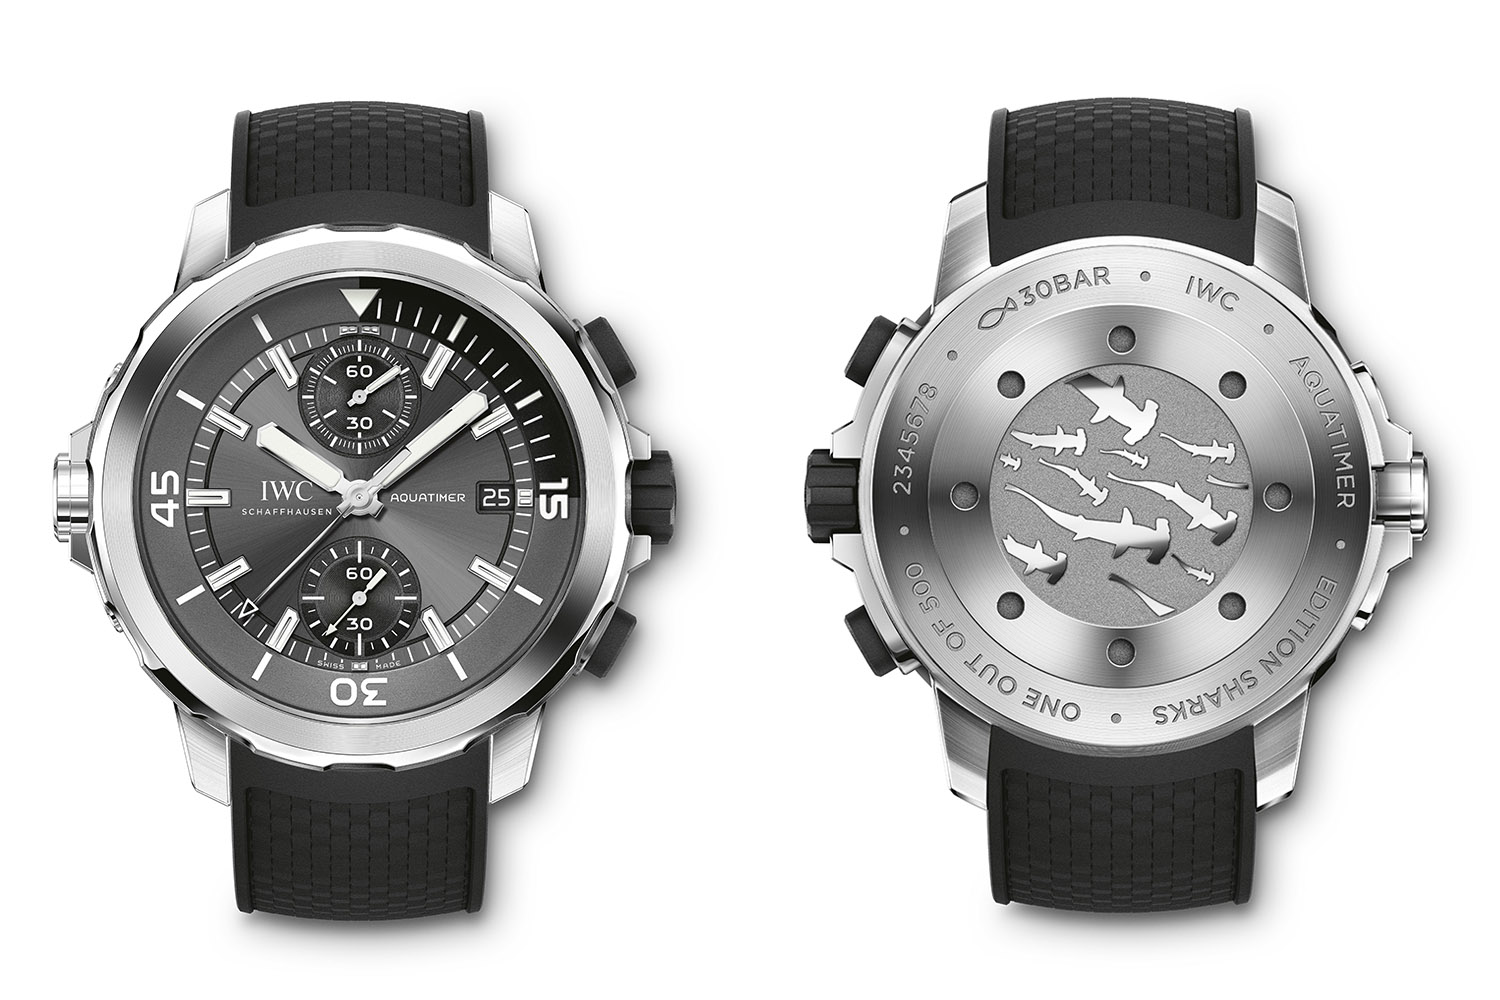 iwc-aquatimer-chronograph-edition-sharks-1